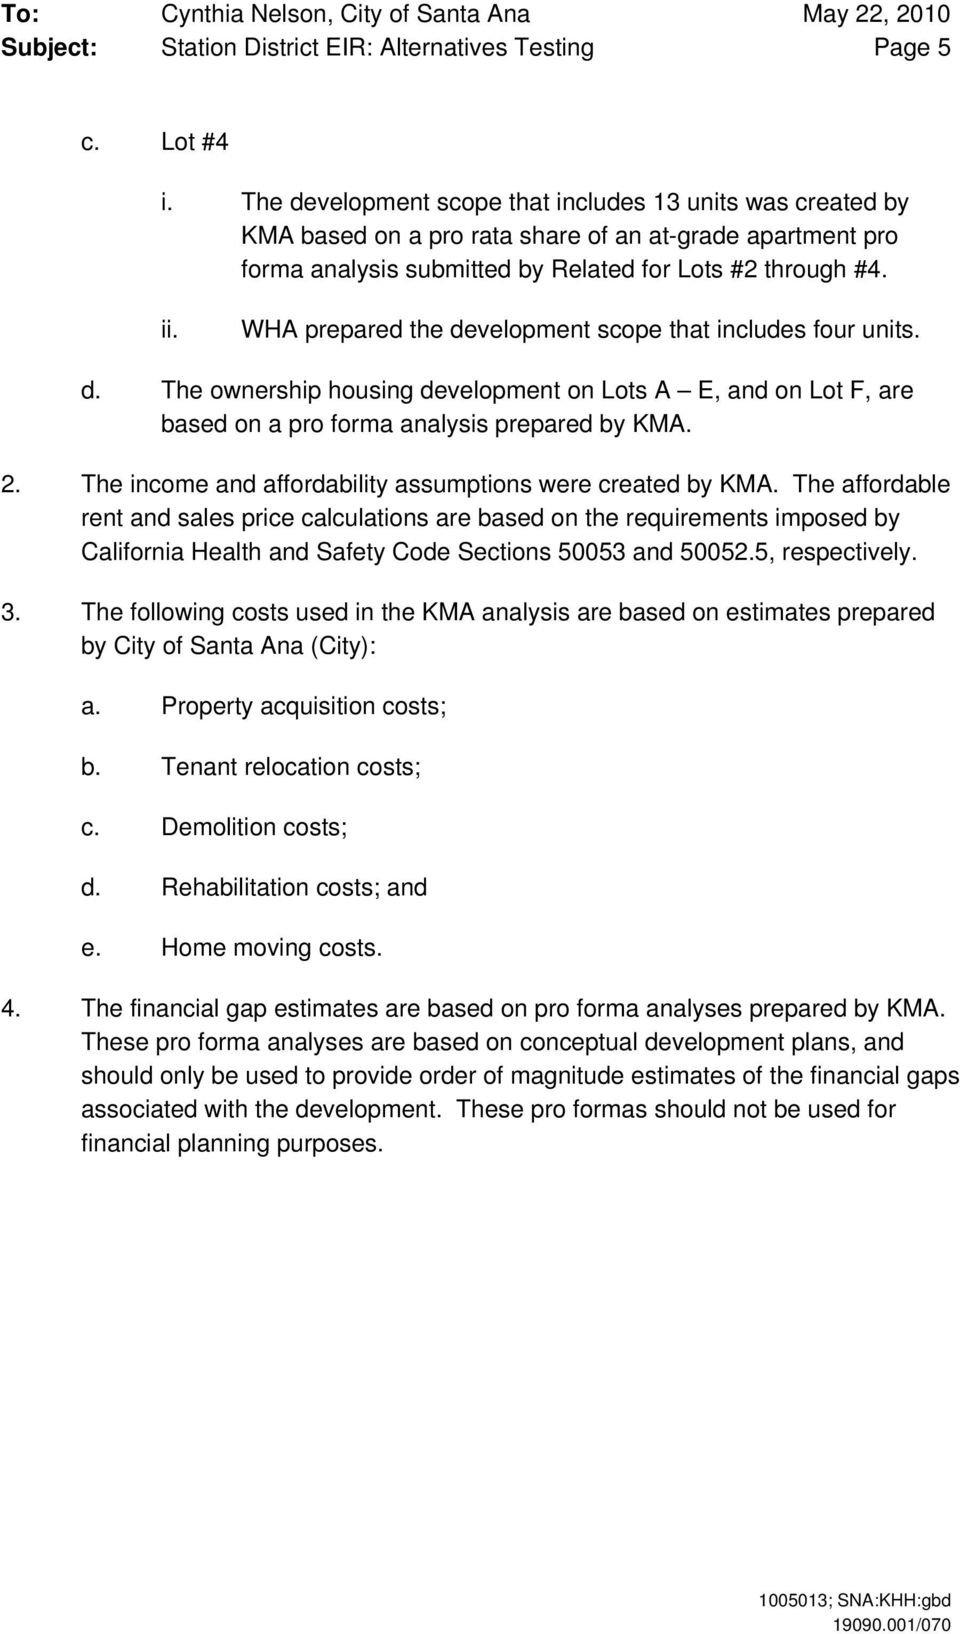 WHA prepared the development scope that includes four units. d. The ownership housing development on Lots A E, and on Lot F, are based on a pro forma analysis prepared by KMA. 2.